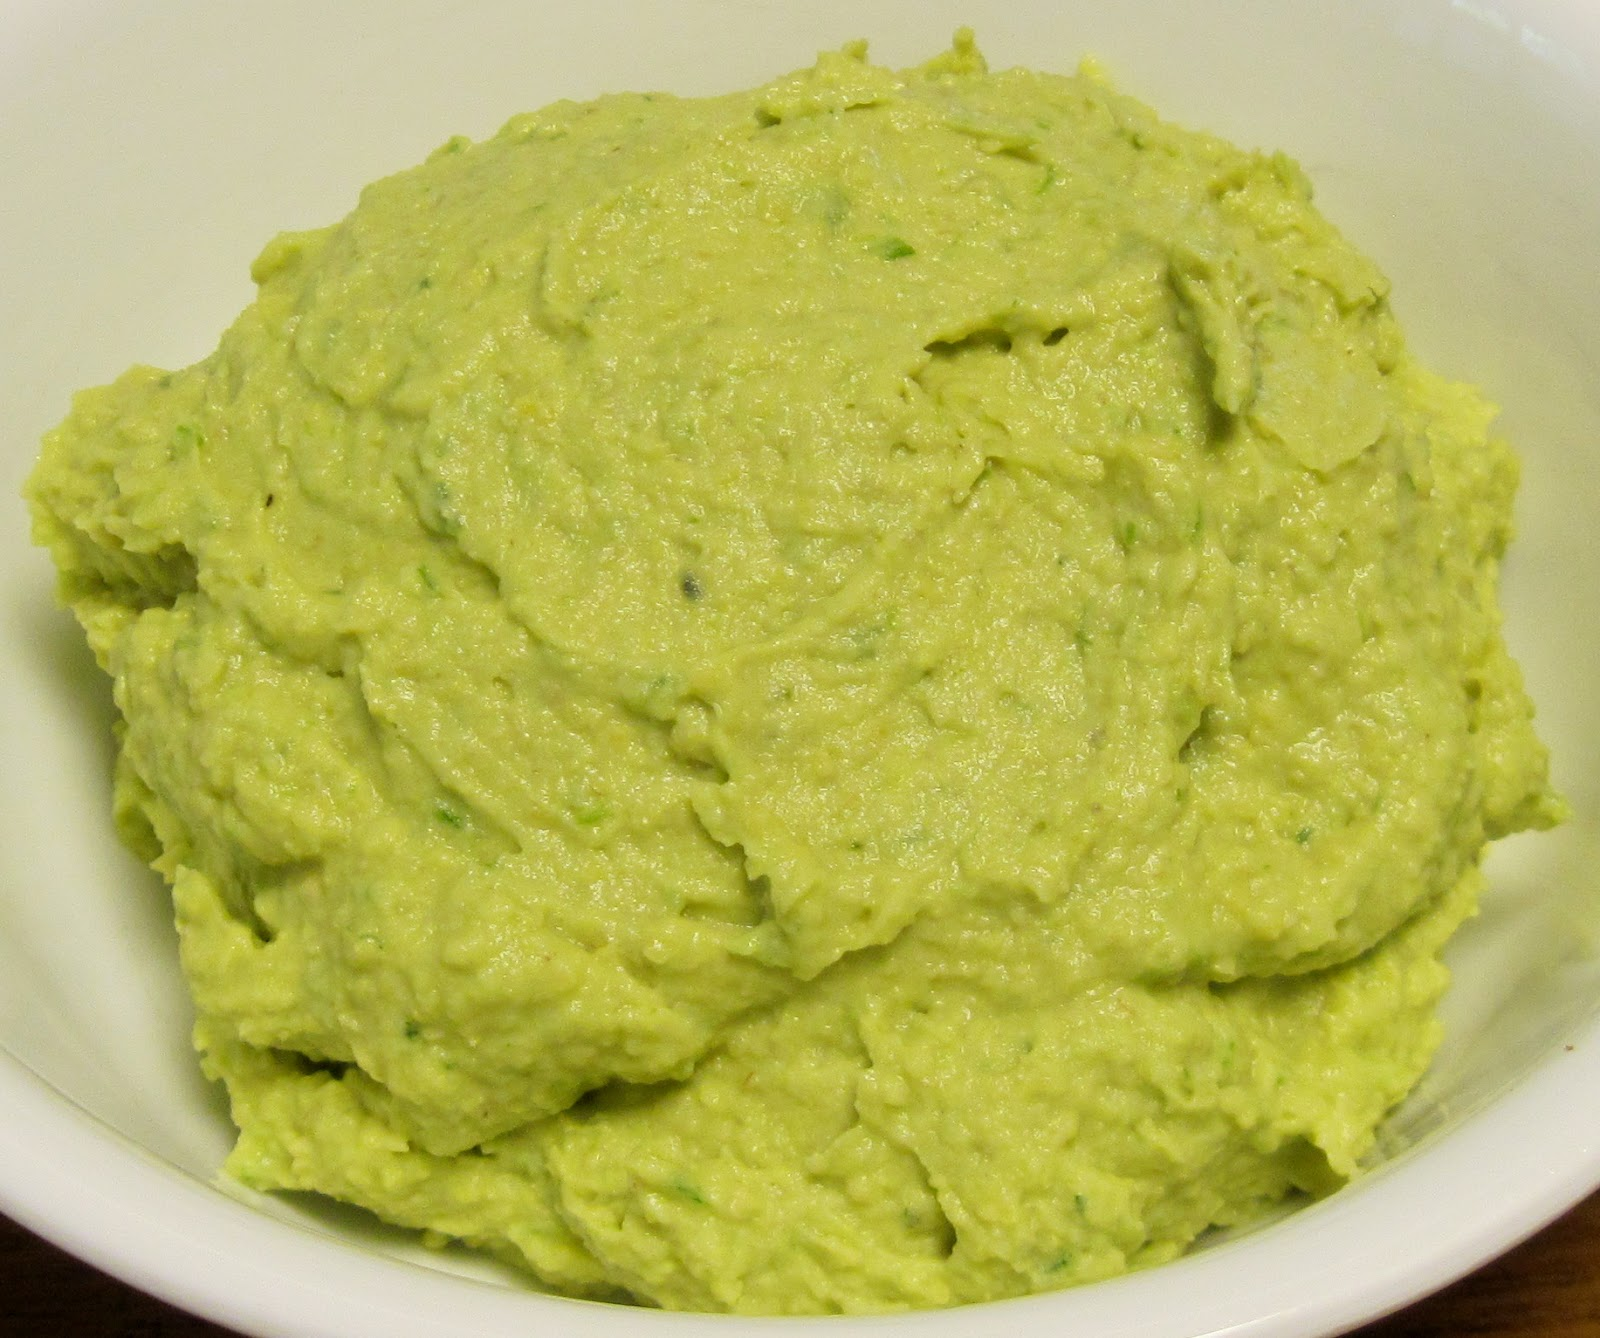 Carolina Sauce Company: Zesty Avocado-Garlic Hummus